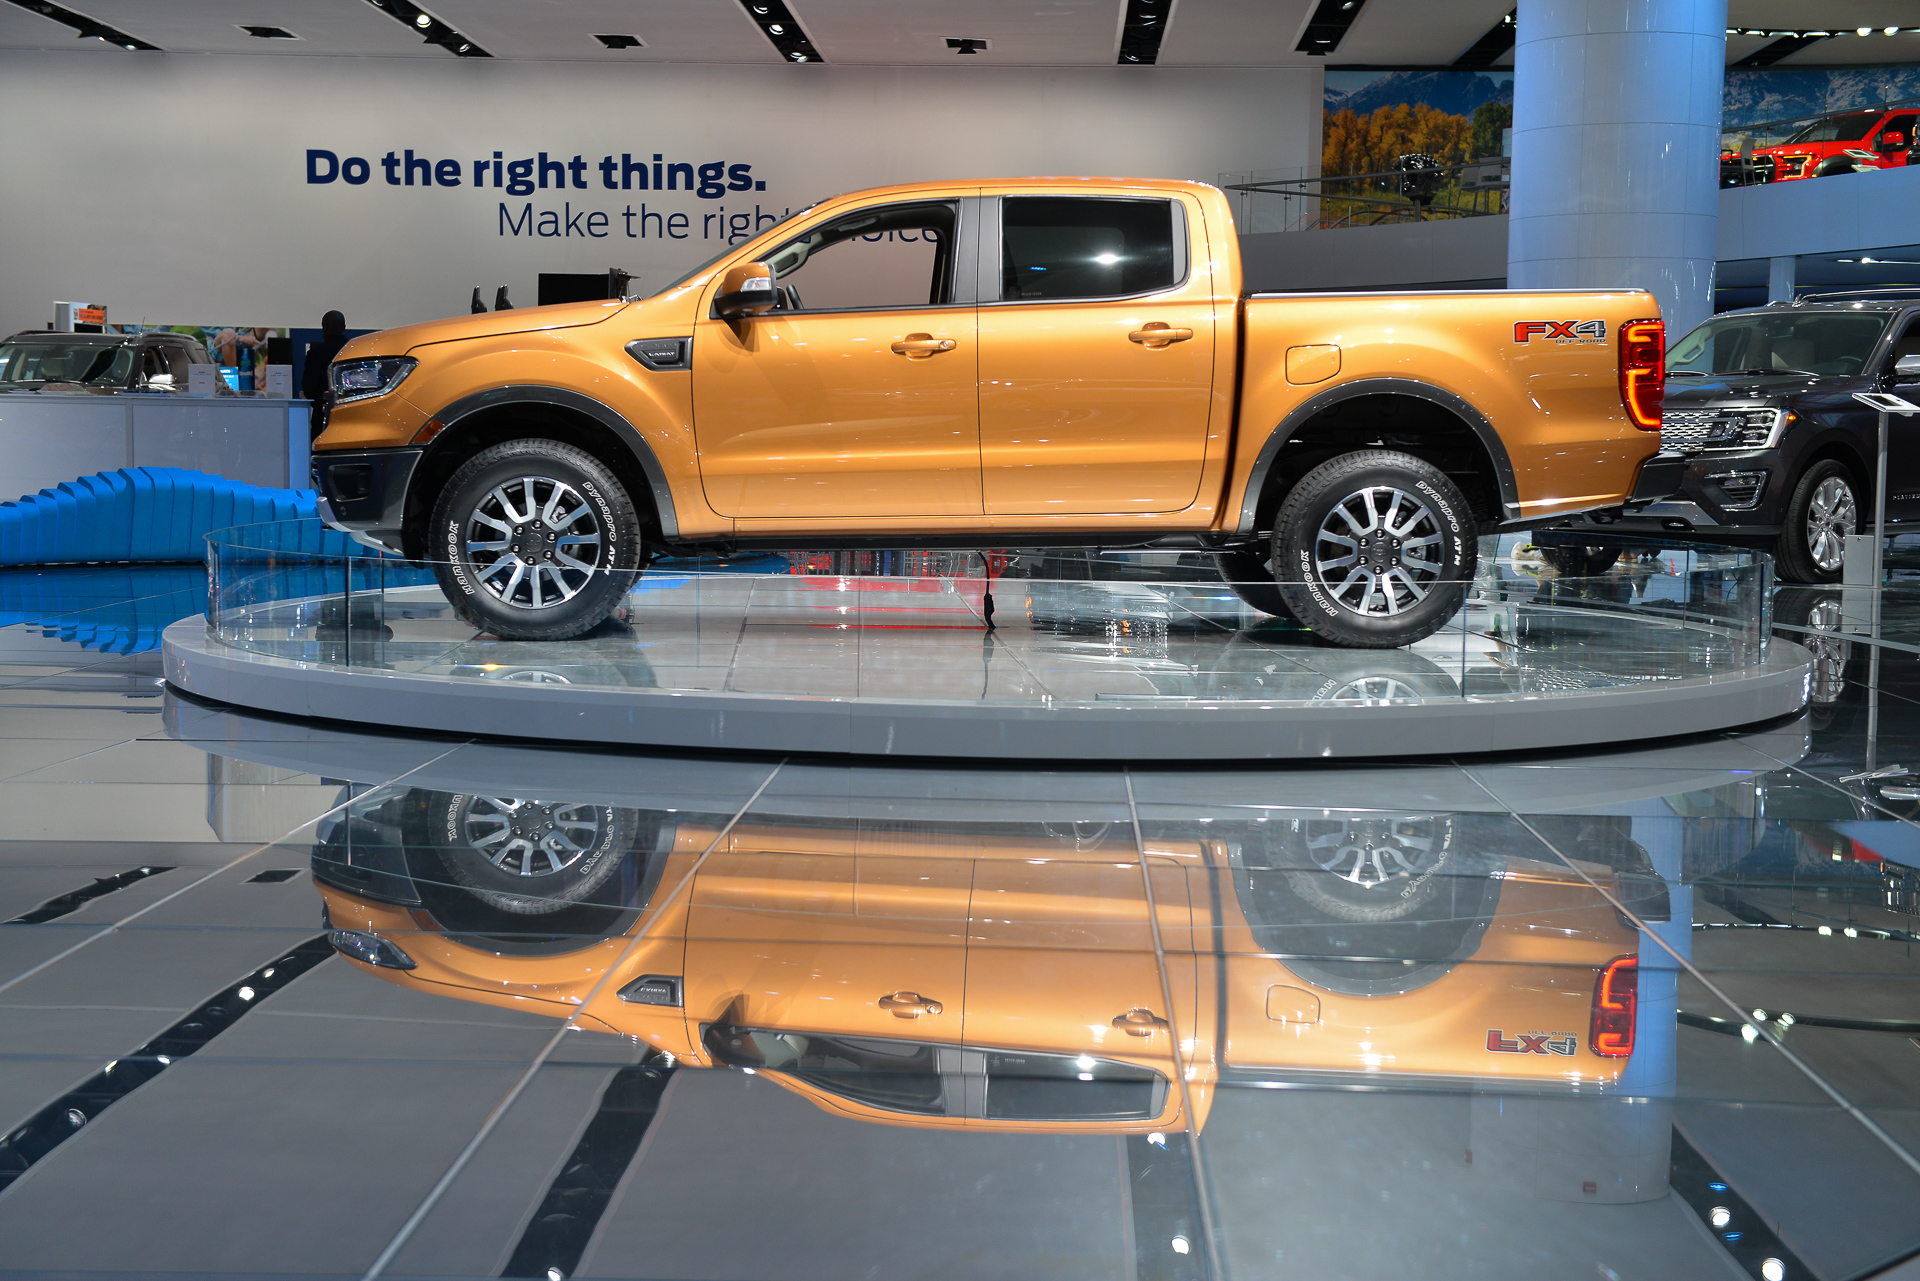 Dodge Pickup Trucks >> Ranger rides again: Ford introduces 2019 Ranger in Detroit